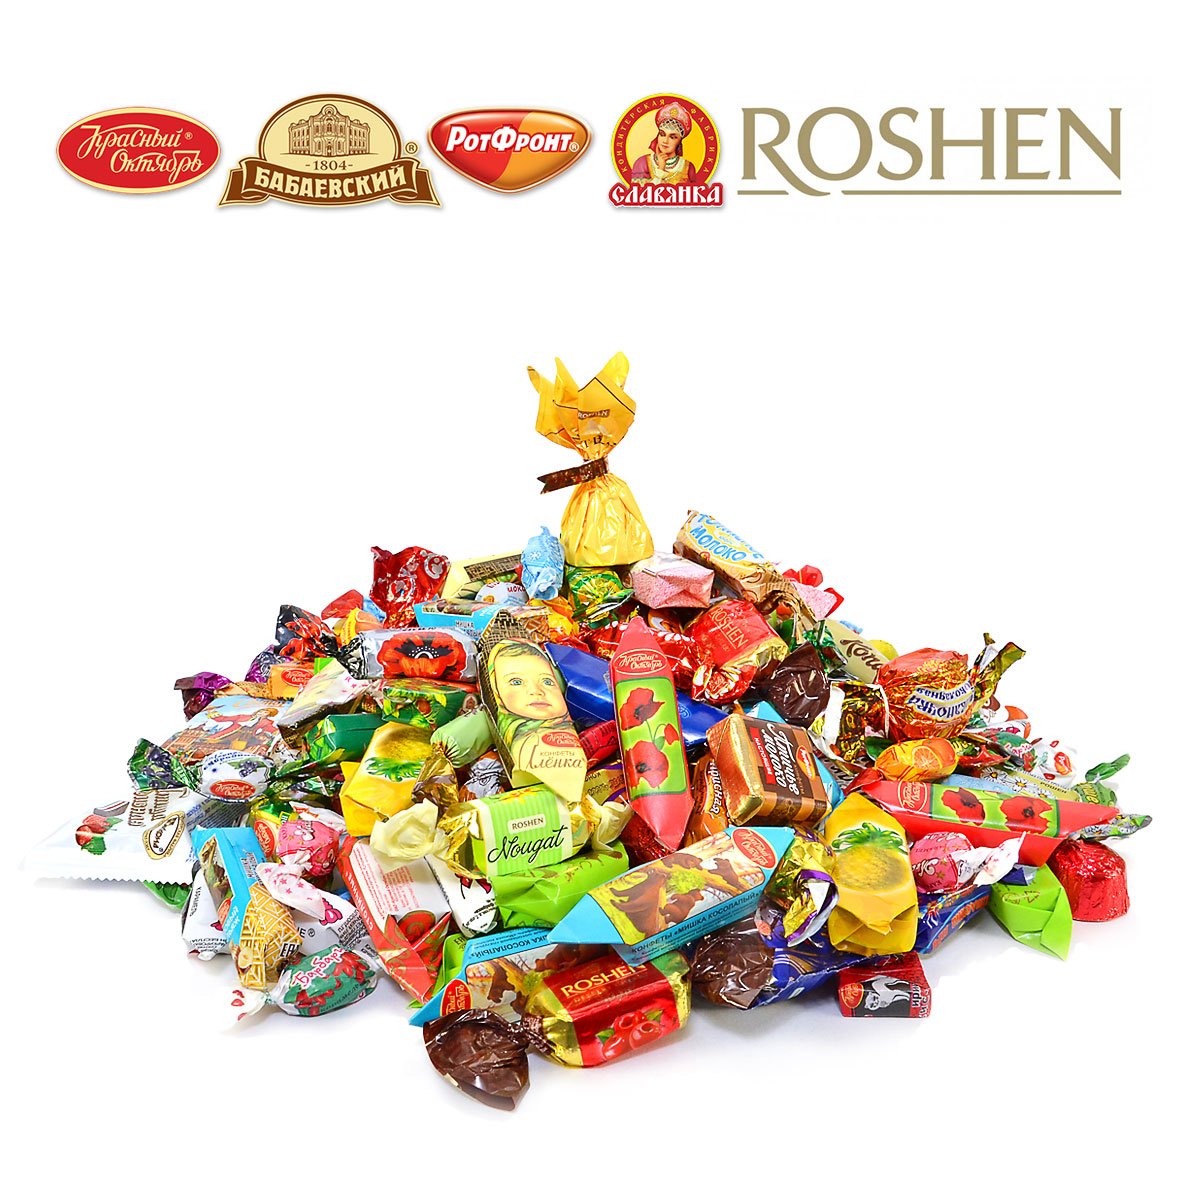 Assorted chocolate and caramel candies in a New Year corrugated cardboard box